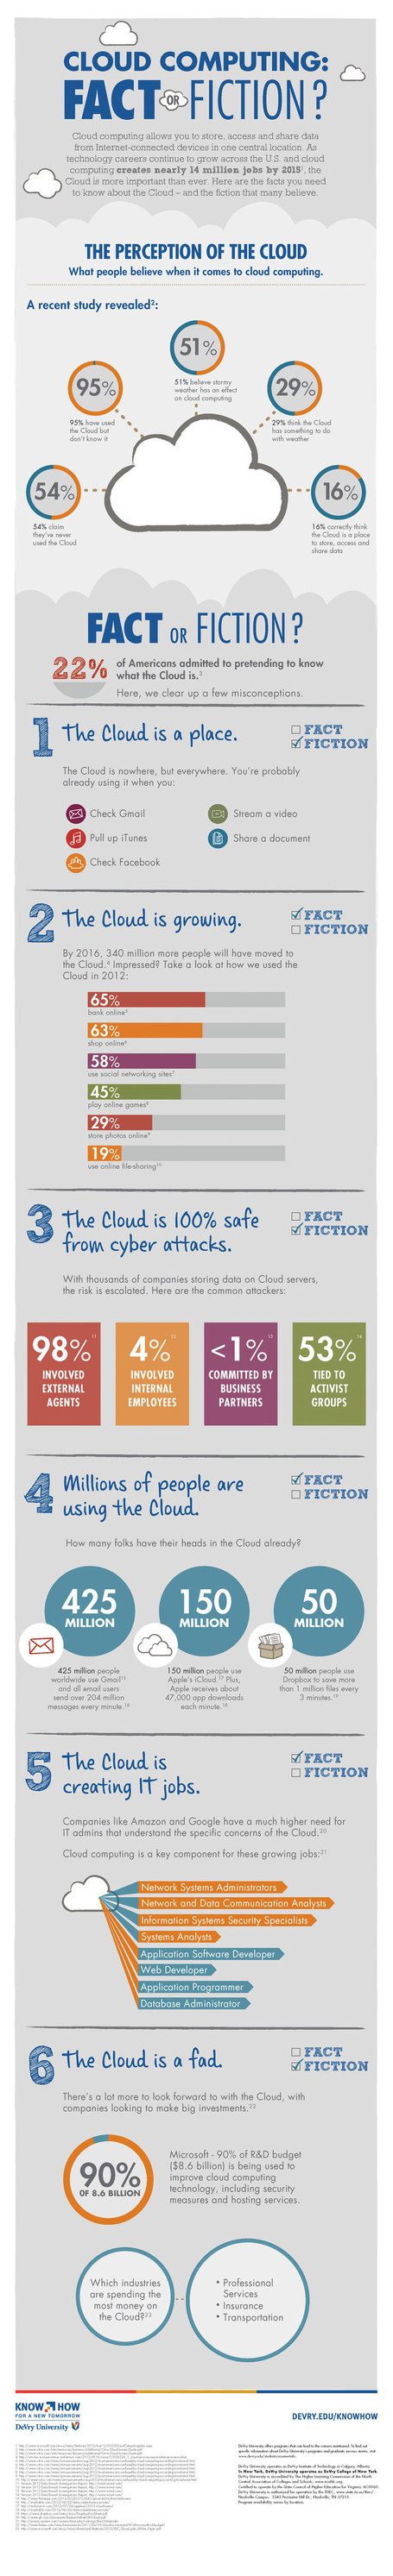 Is Cloud Computing a Fact or Fiction? – infographic | Managing options | Scoop.it